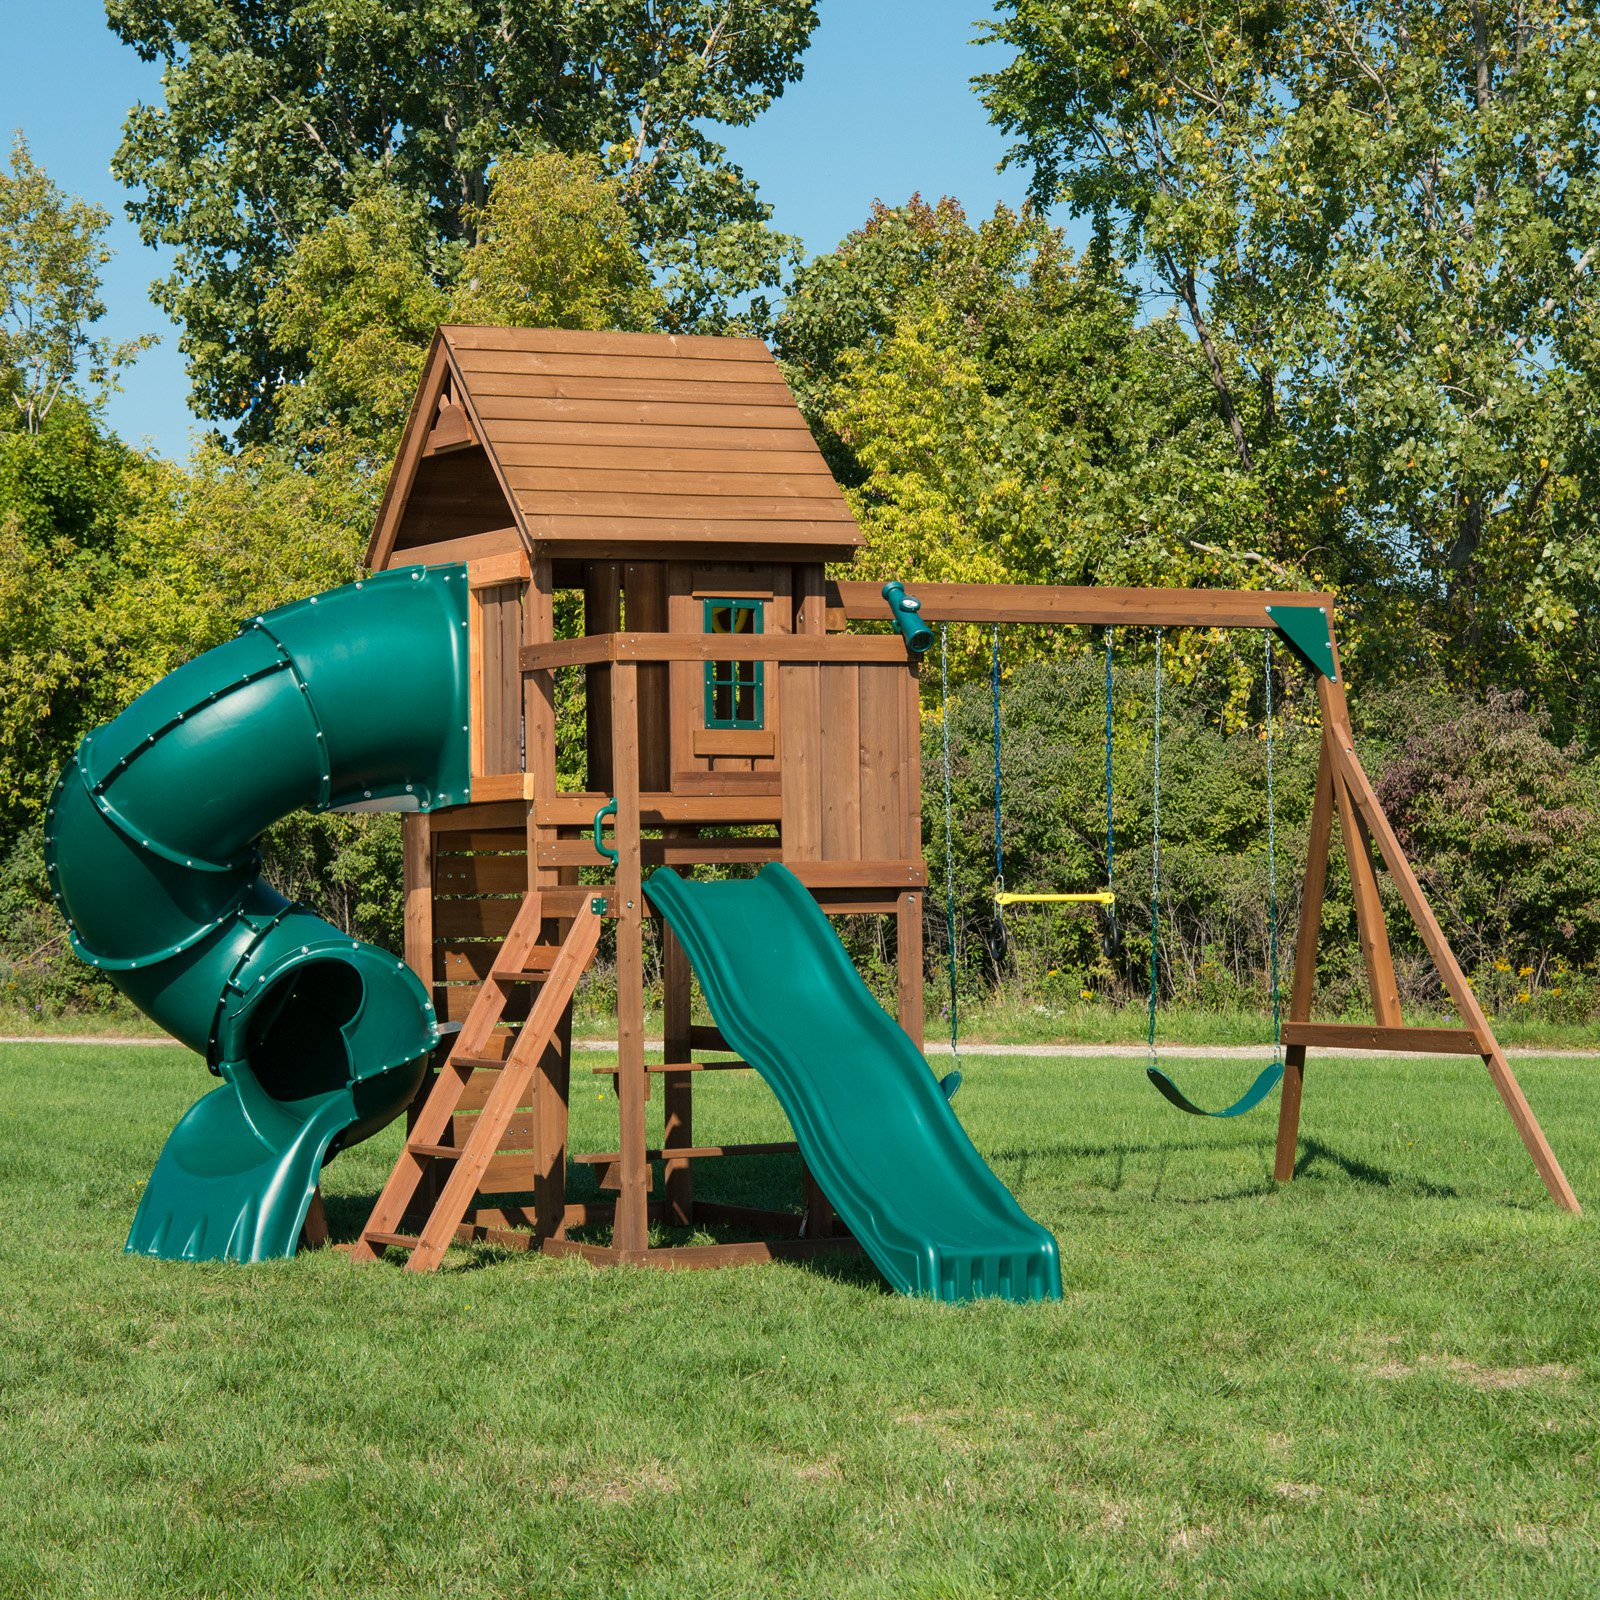 Swing-N-Slide Tremont Tower Wood Complete Play Set with two slides